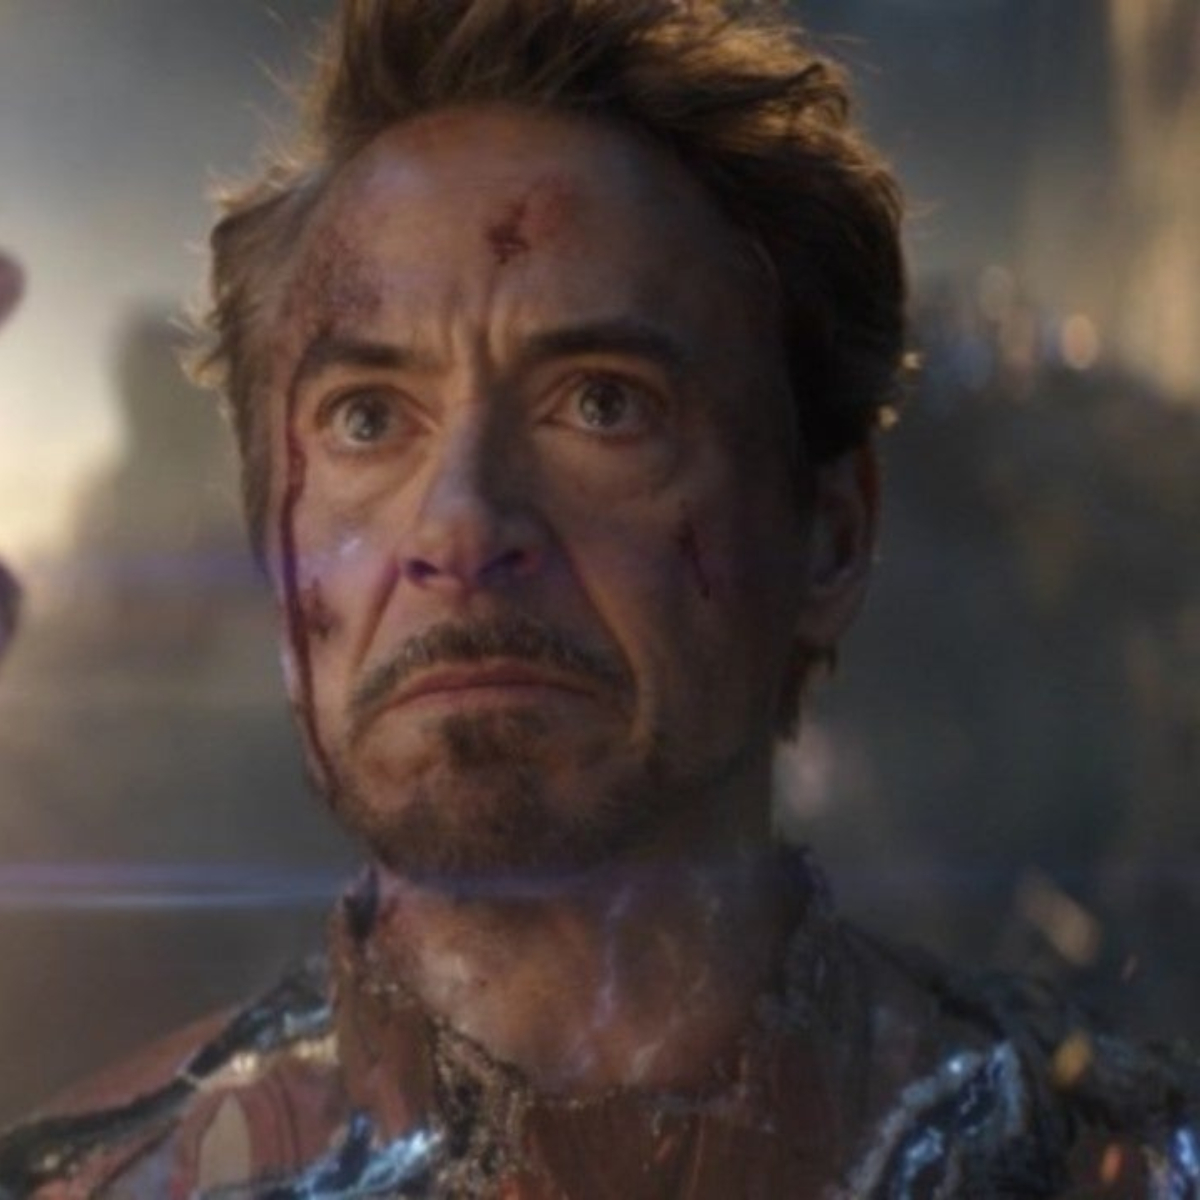 Avengers: Endgame script REVEALS Tony Stark's final thought before dying and it will leave you heartbroken